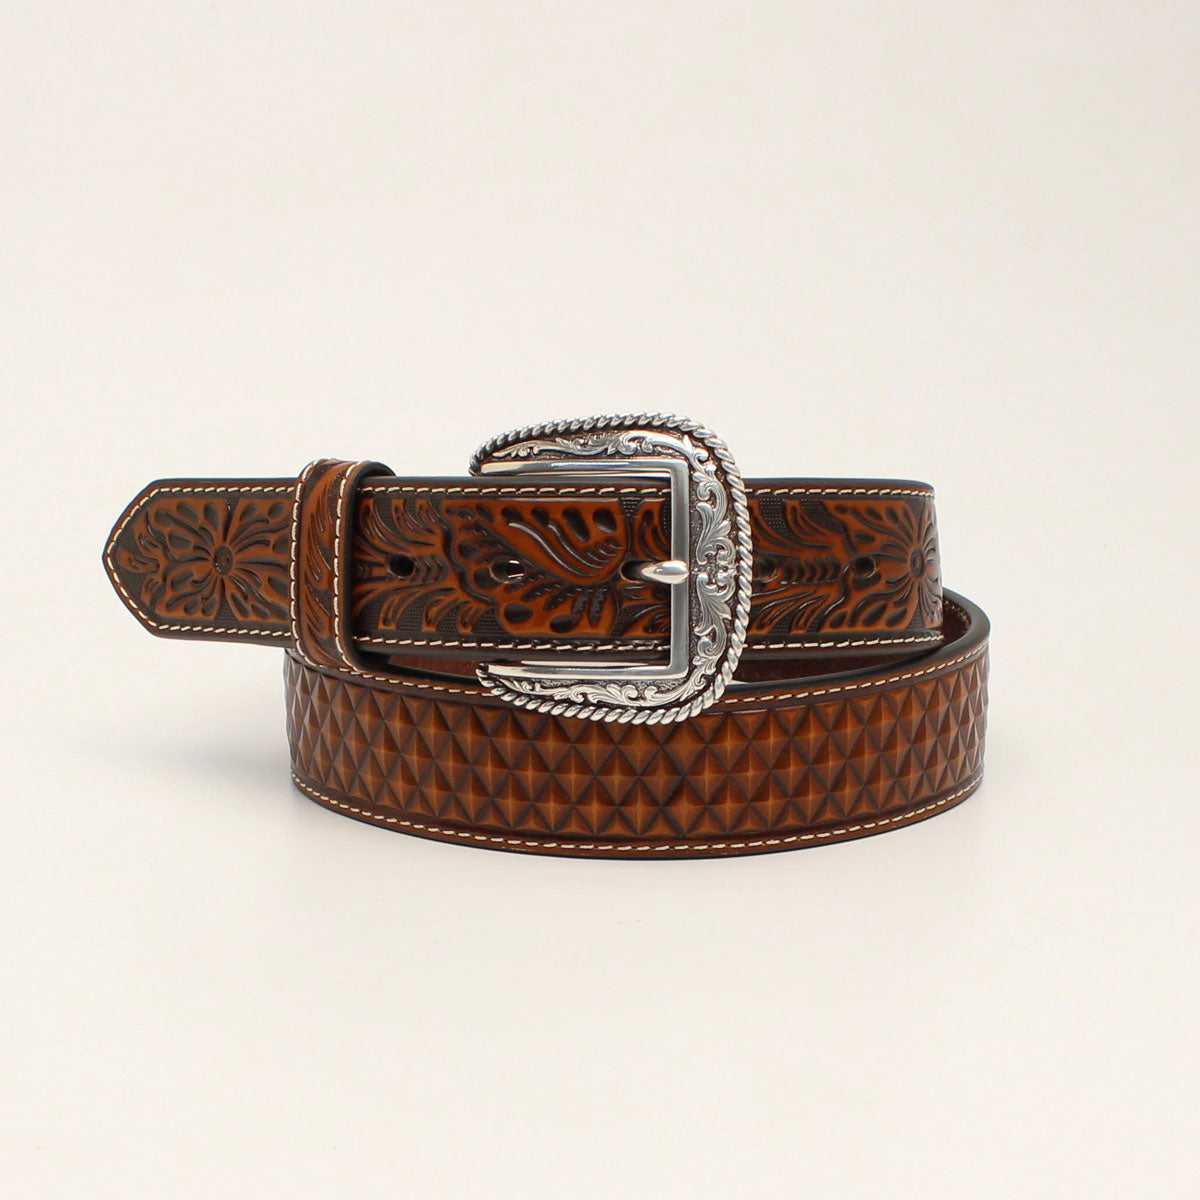 Ariat Men's Western Floral Embossed Tan Leather Belt